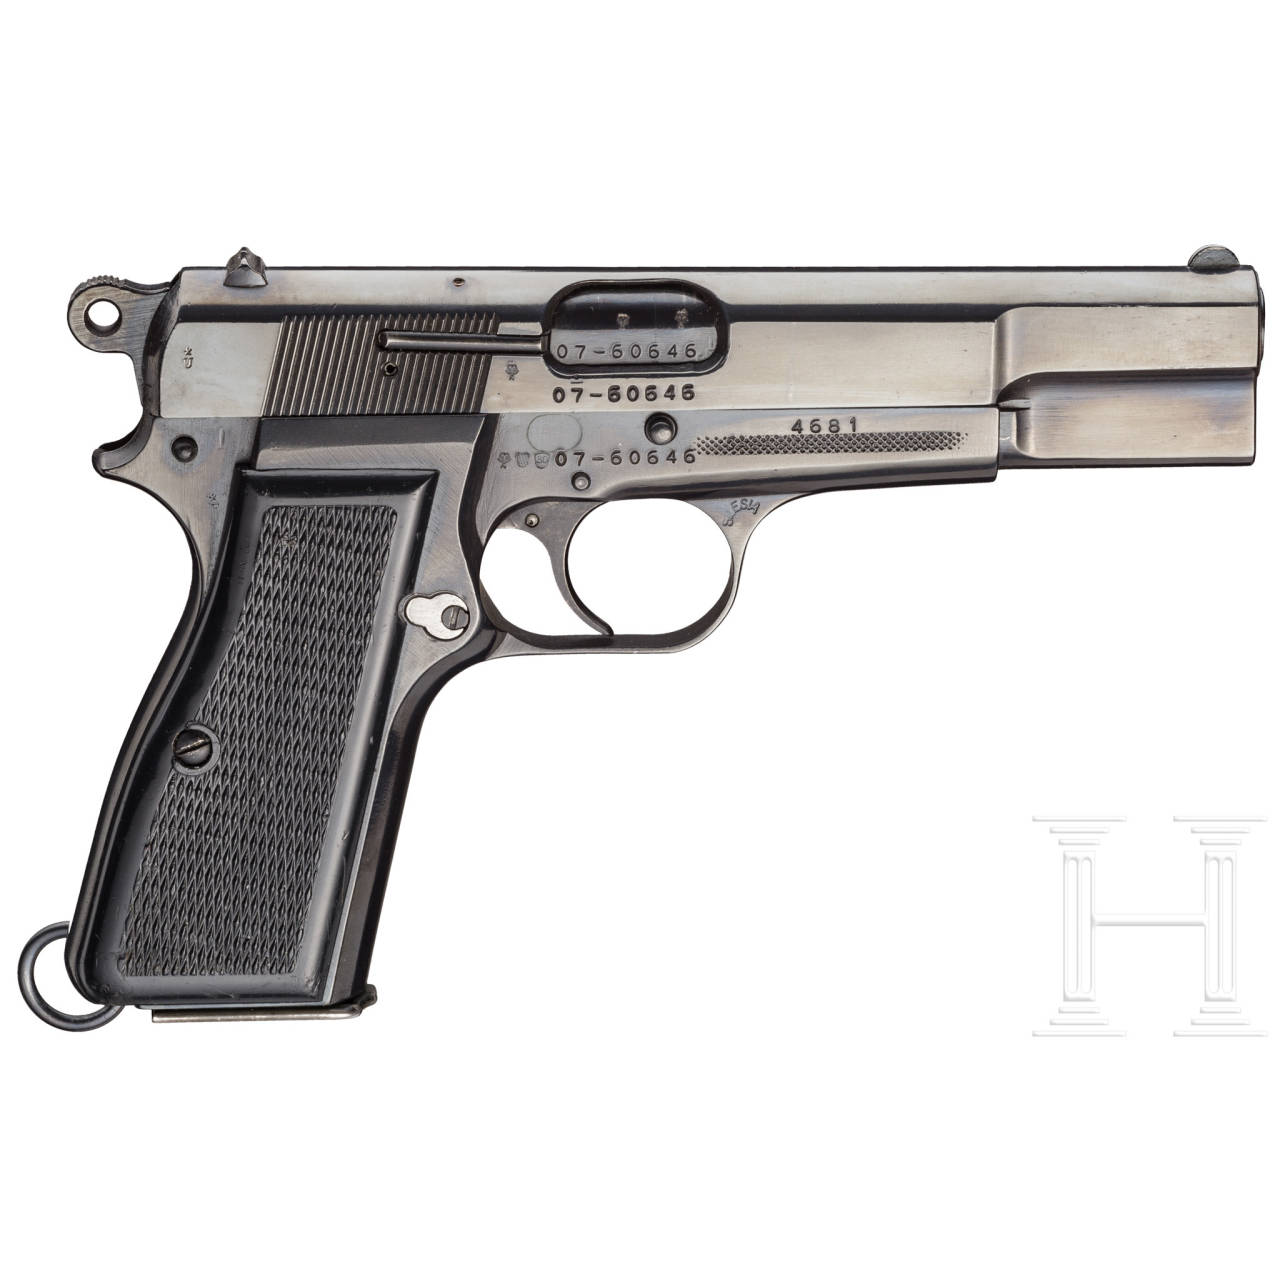 FN Browning, D.G.F.M.